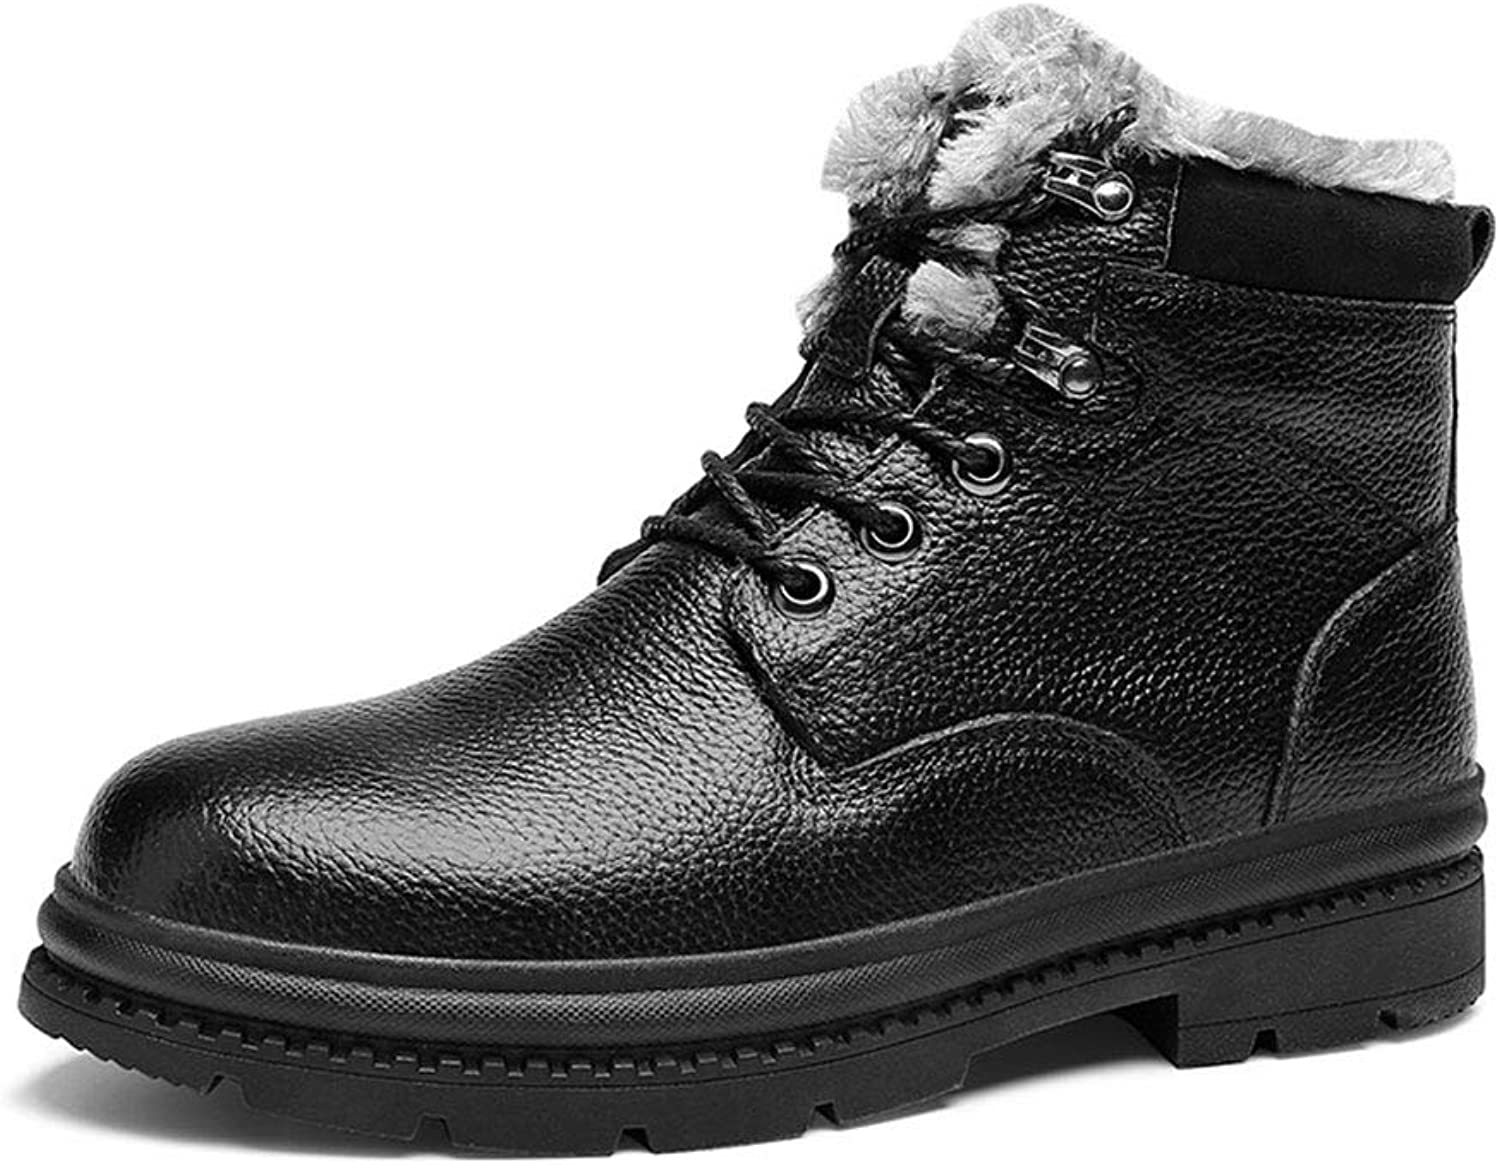 High Rise Boots,Men's Leather Walking Hiking shoes,Winter Snow Boots,Waterproof Trekking Comfort shoes, Rubber Sole